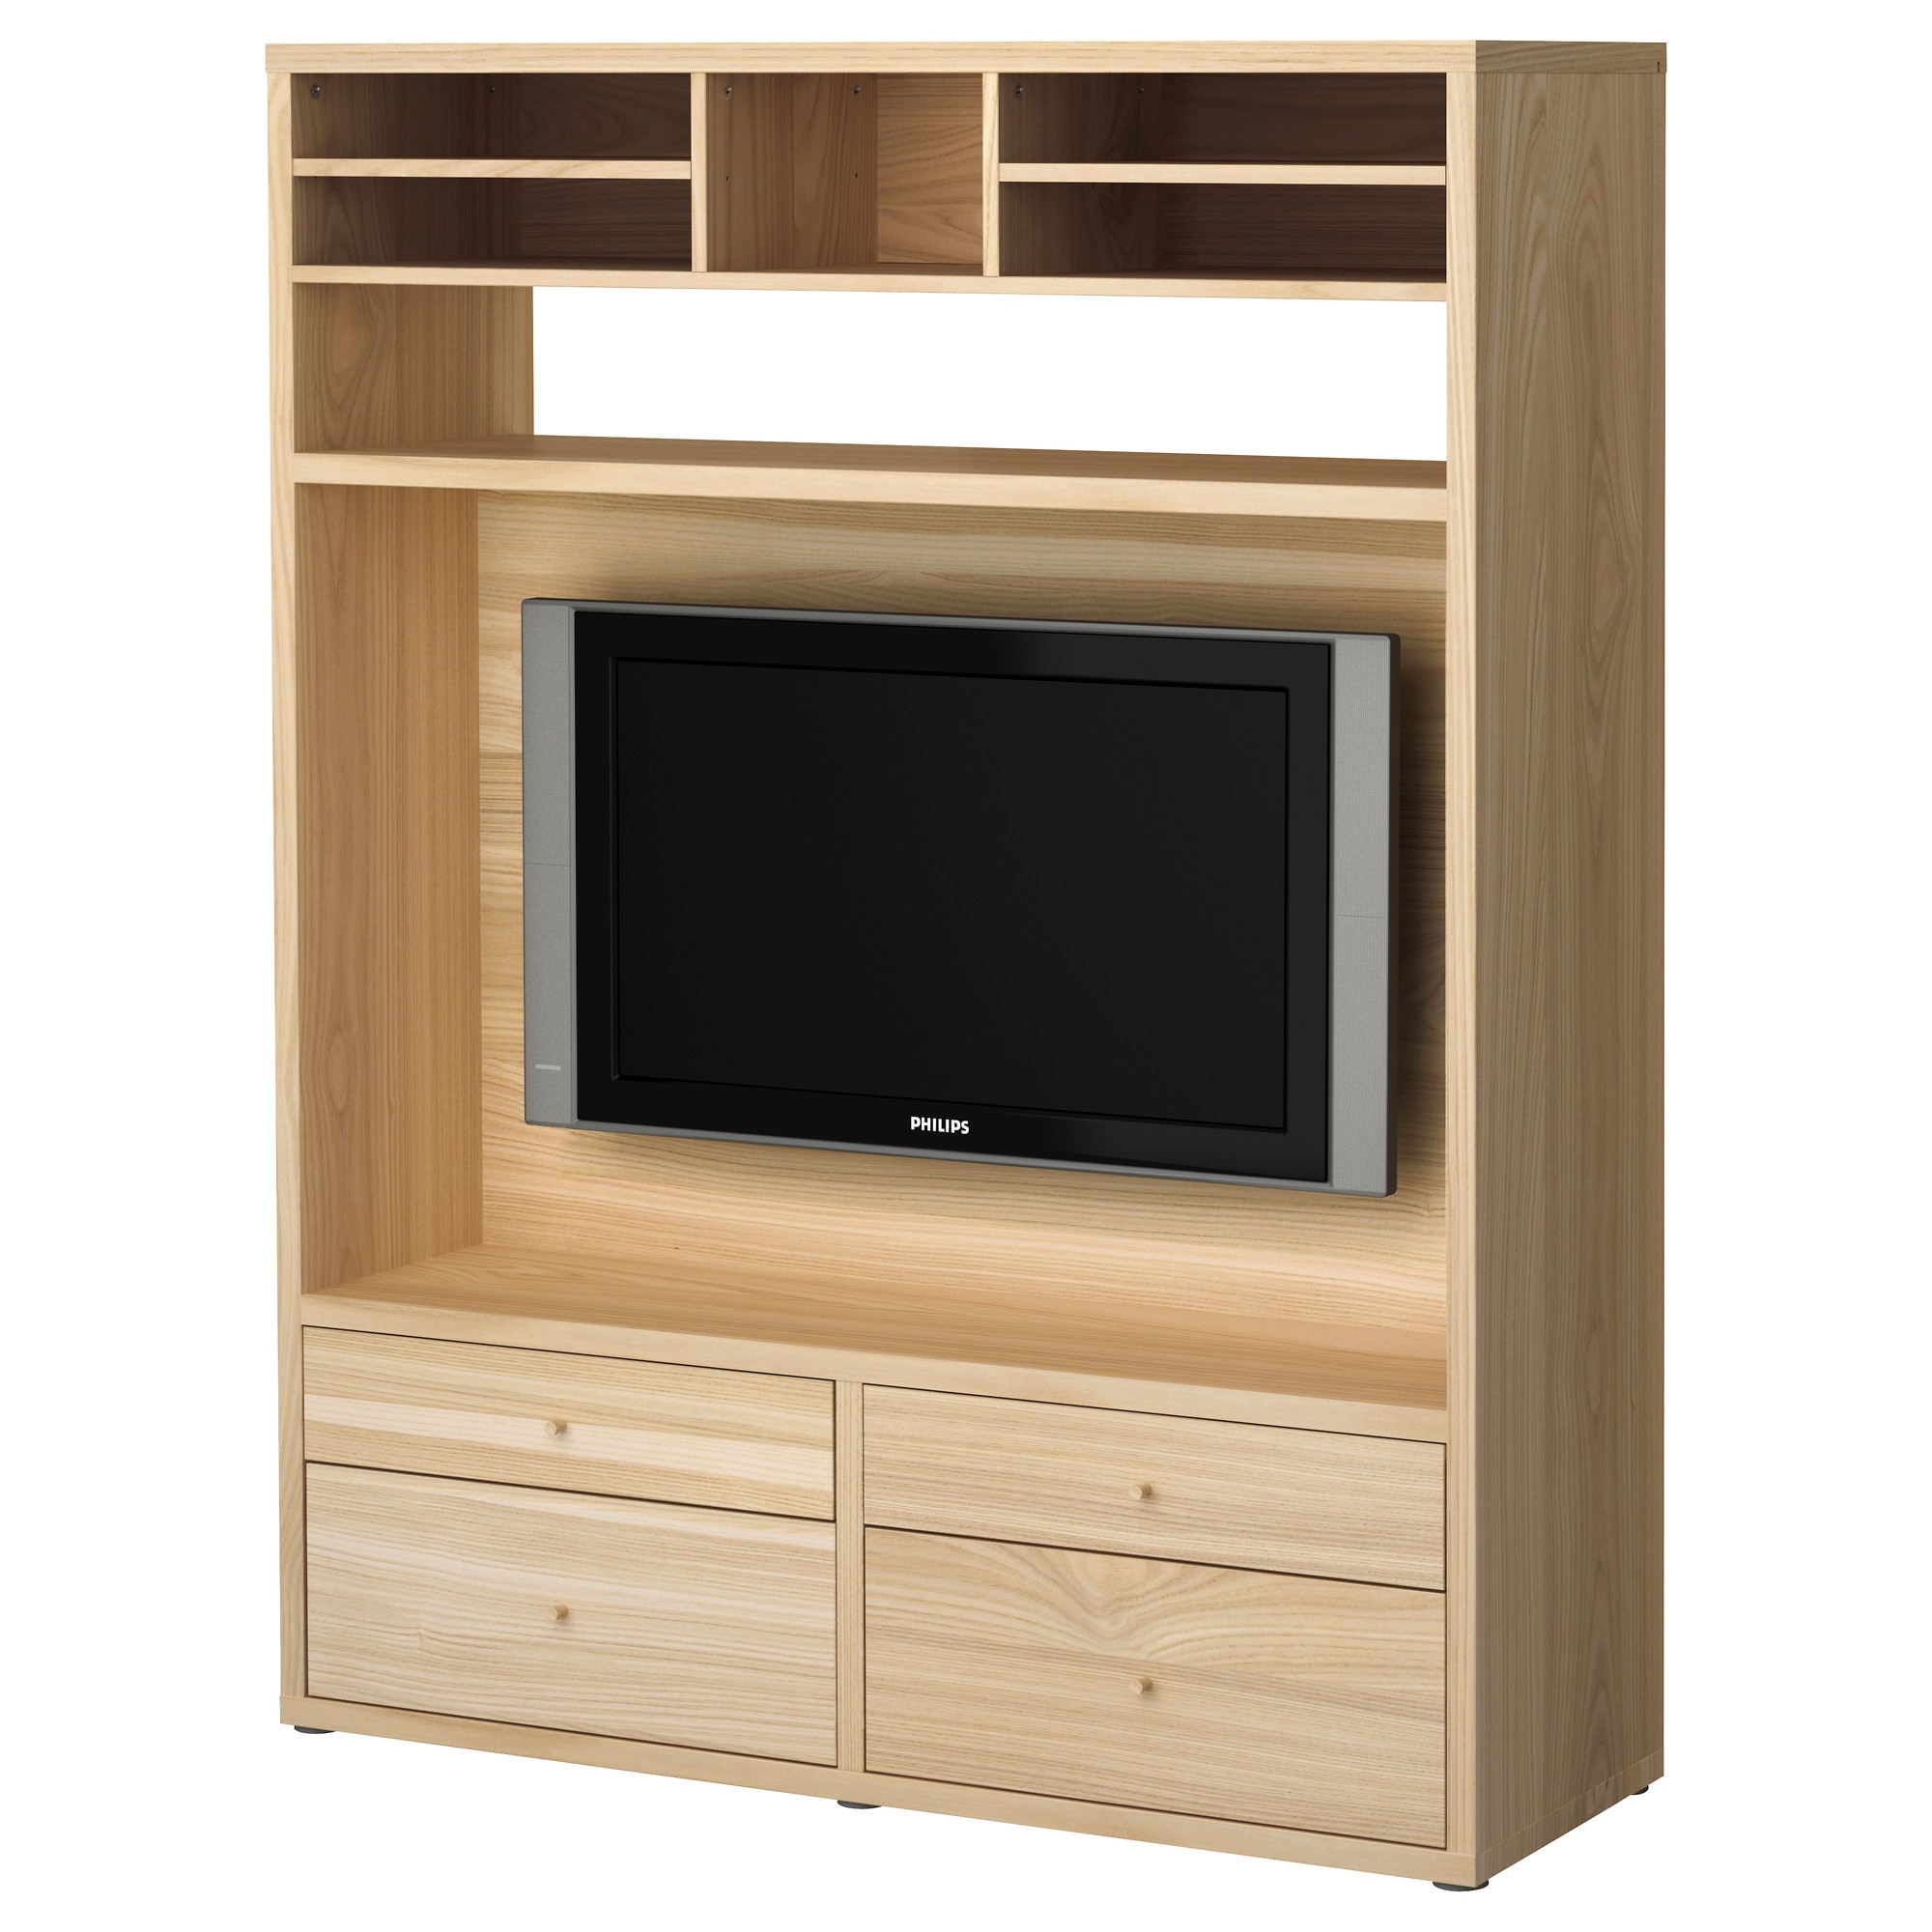 tv board ikea ikea board besta board ikea mosj tv hifi. Black Bedroom Furniture Sets. Home Design Ideas